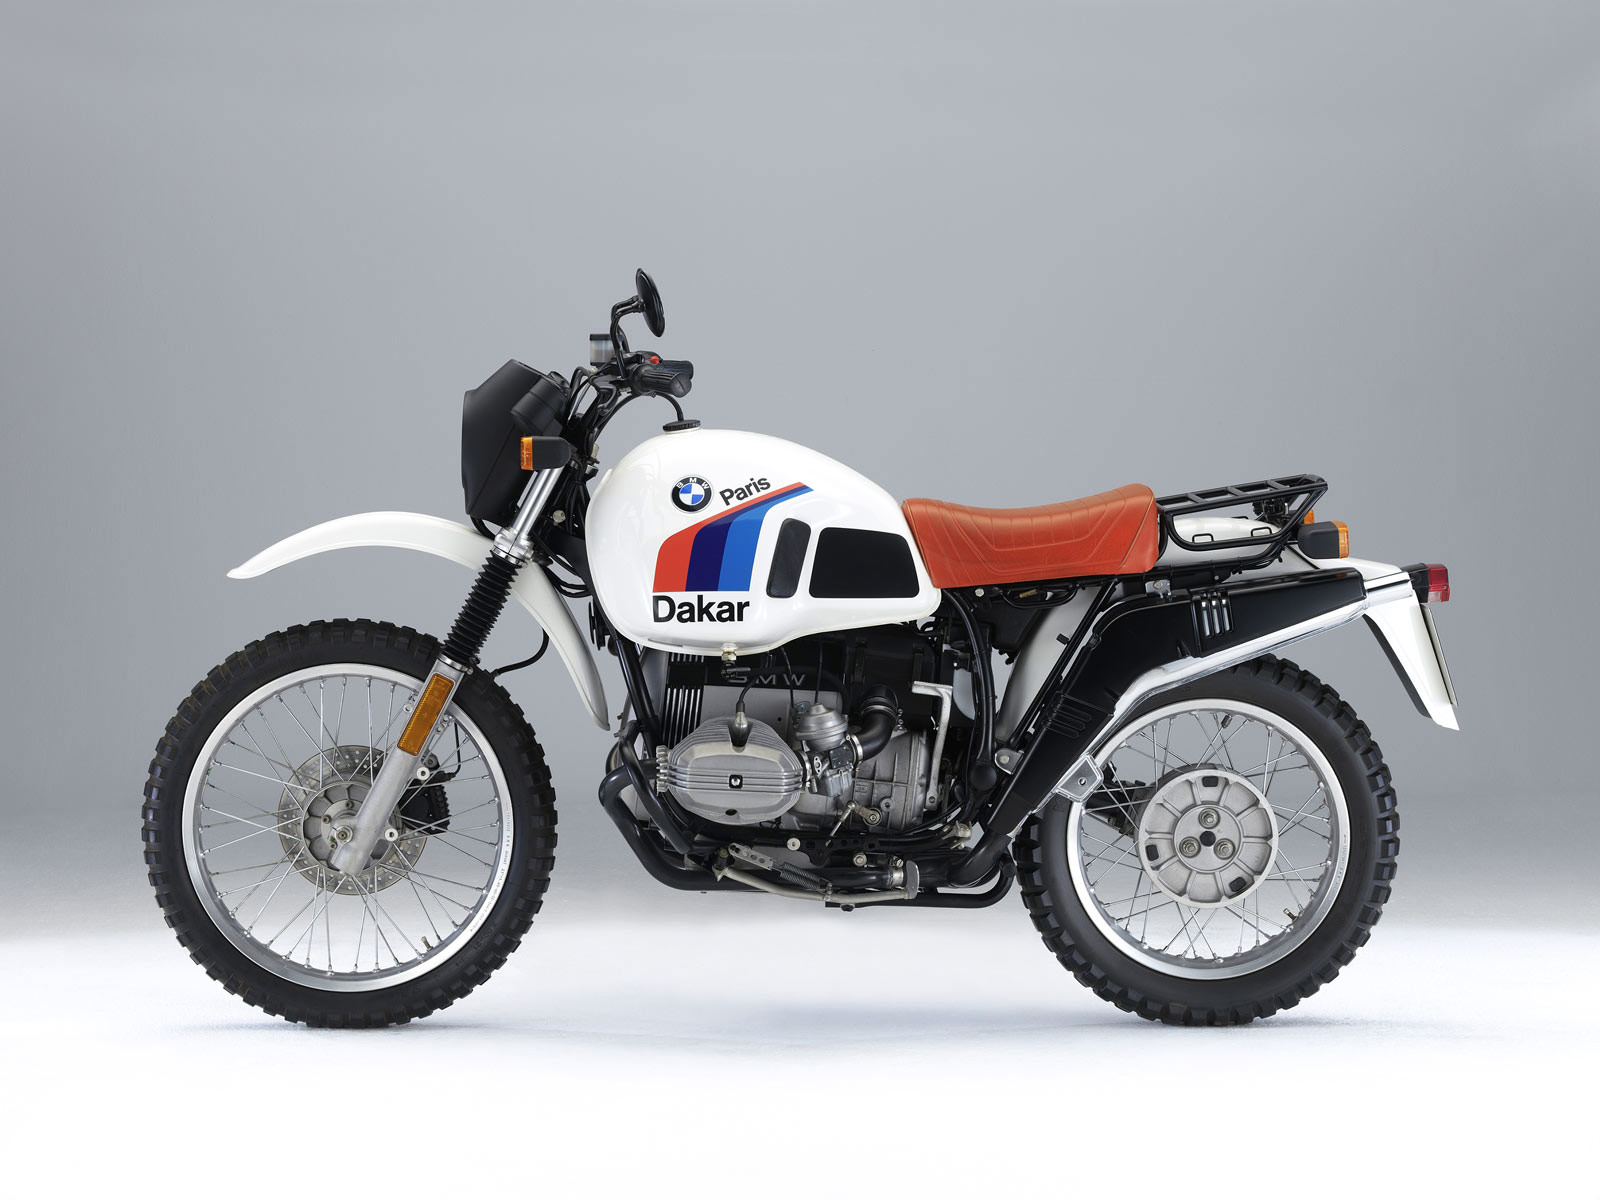 bmw r80 gs reviews specs and photos all bikes zone. Black Bedroom Furniture Sets. Home Design Ideas